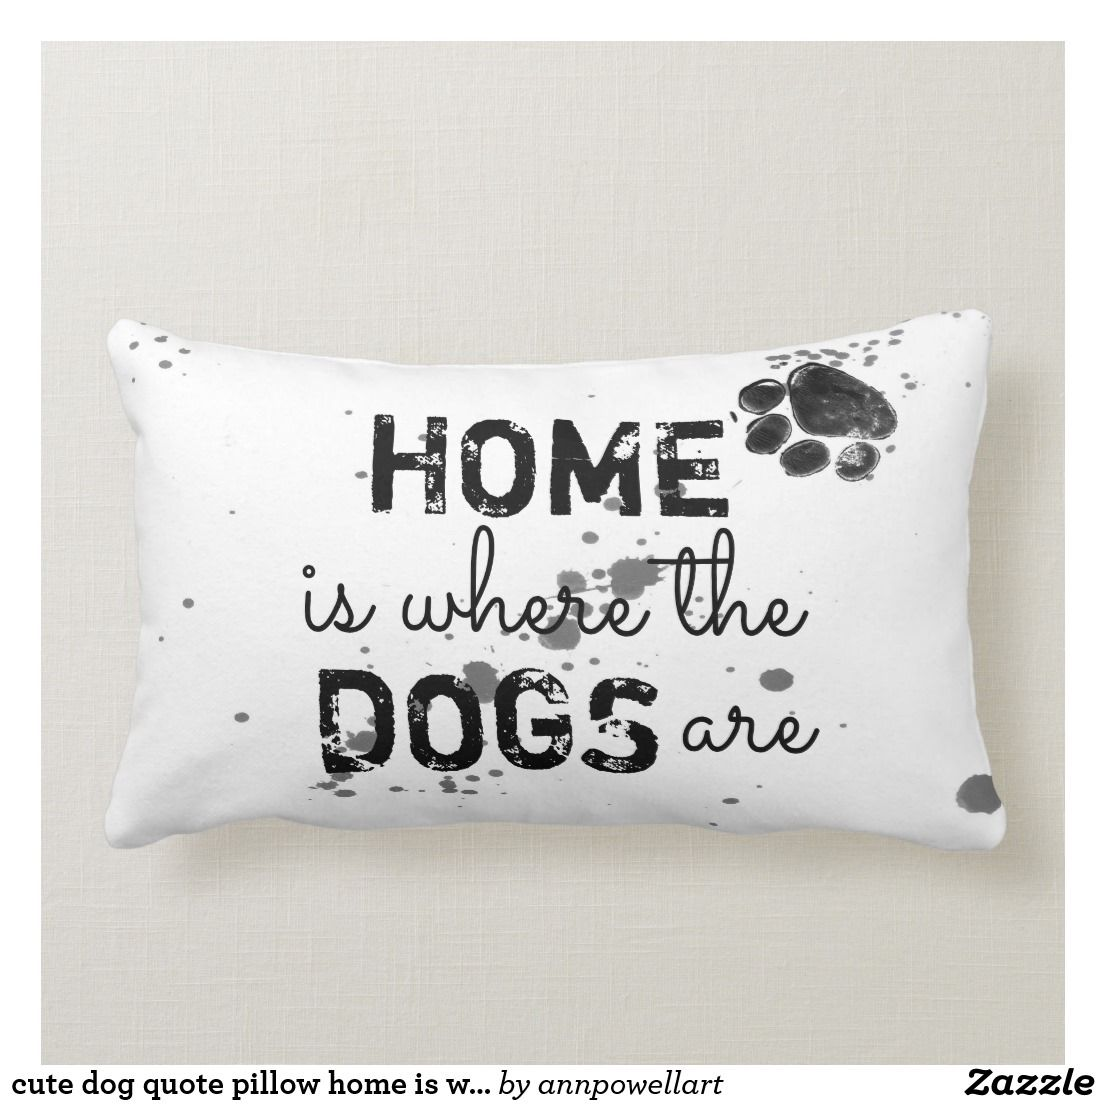 Cute Dog Quote Pillow Home Is Where The Dogs Are Zazzle Com Cute Dog Quotes Pillow Quotes Dog Quotes